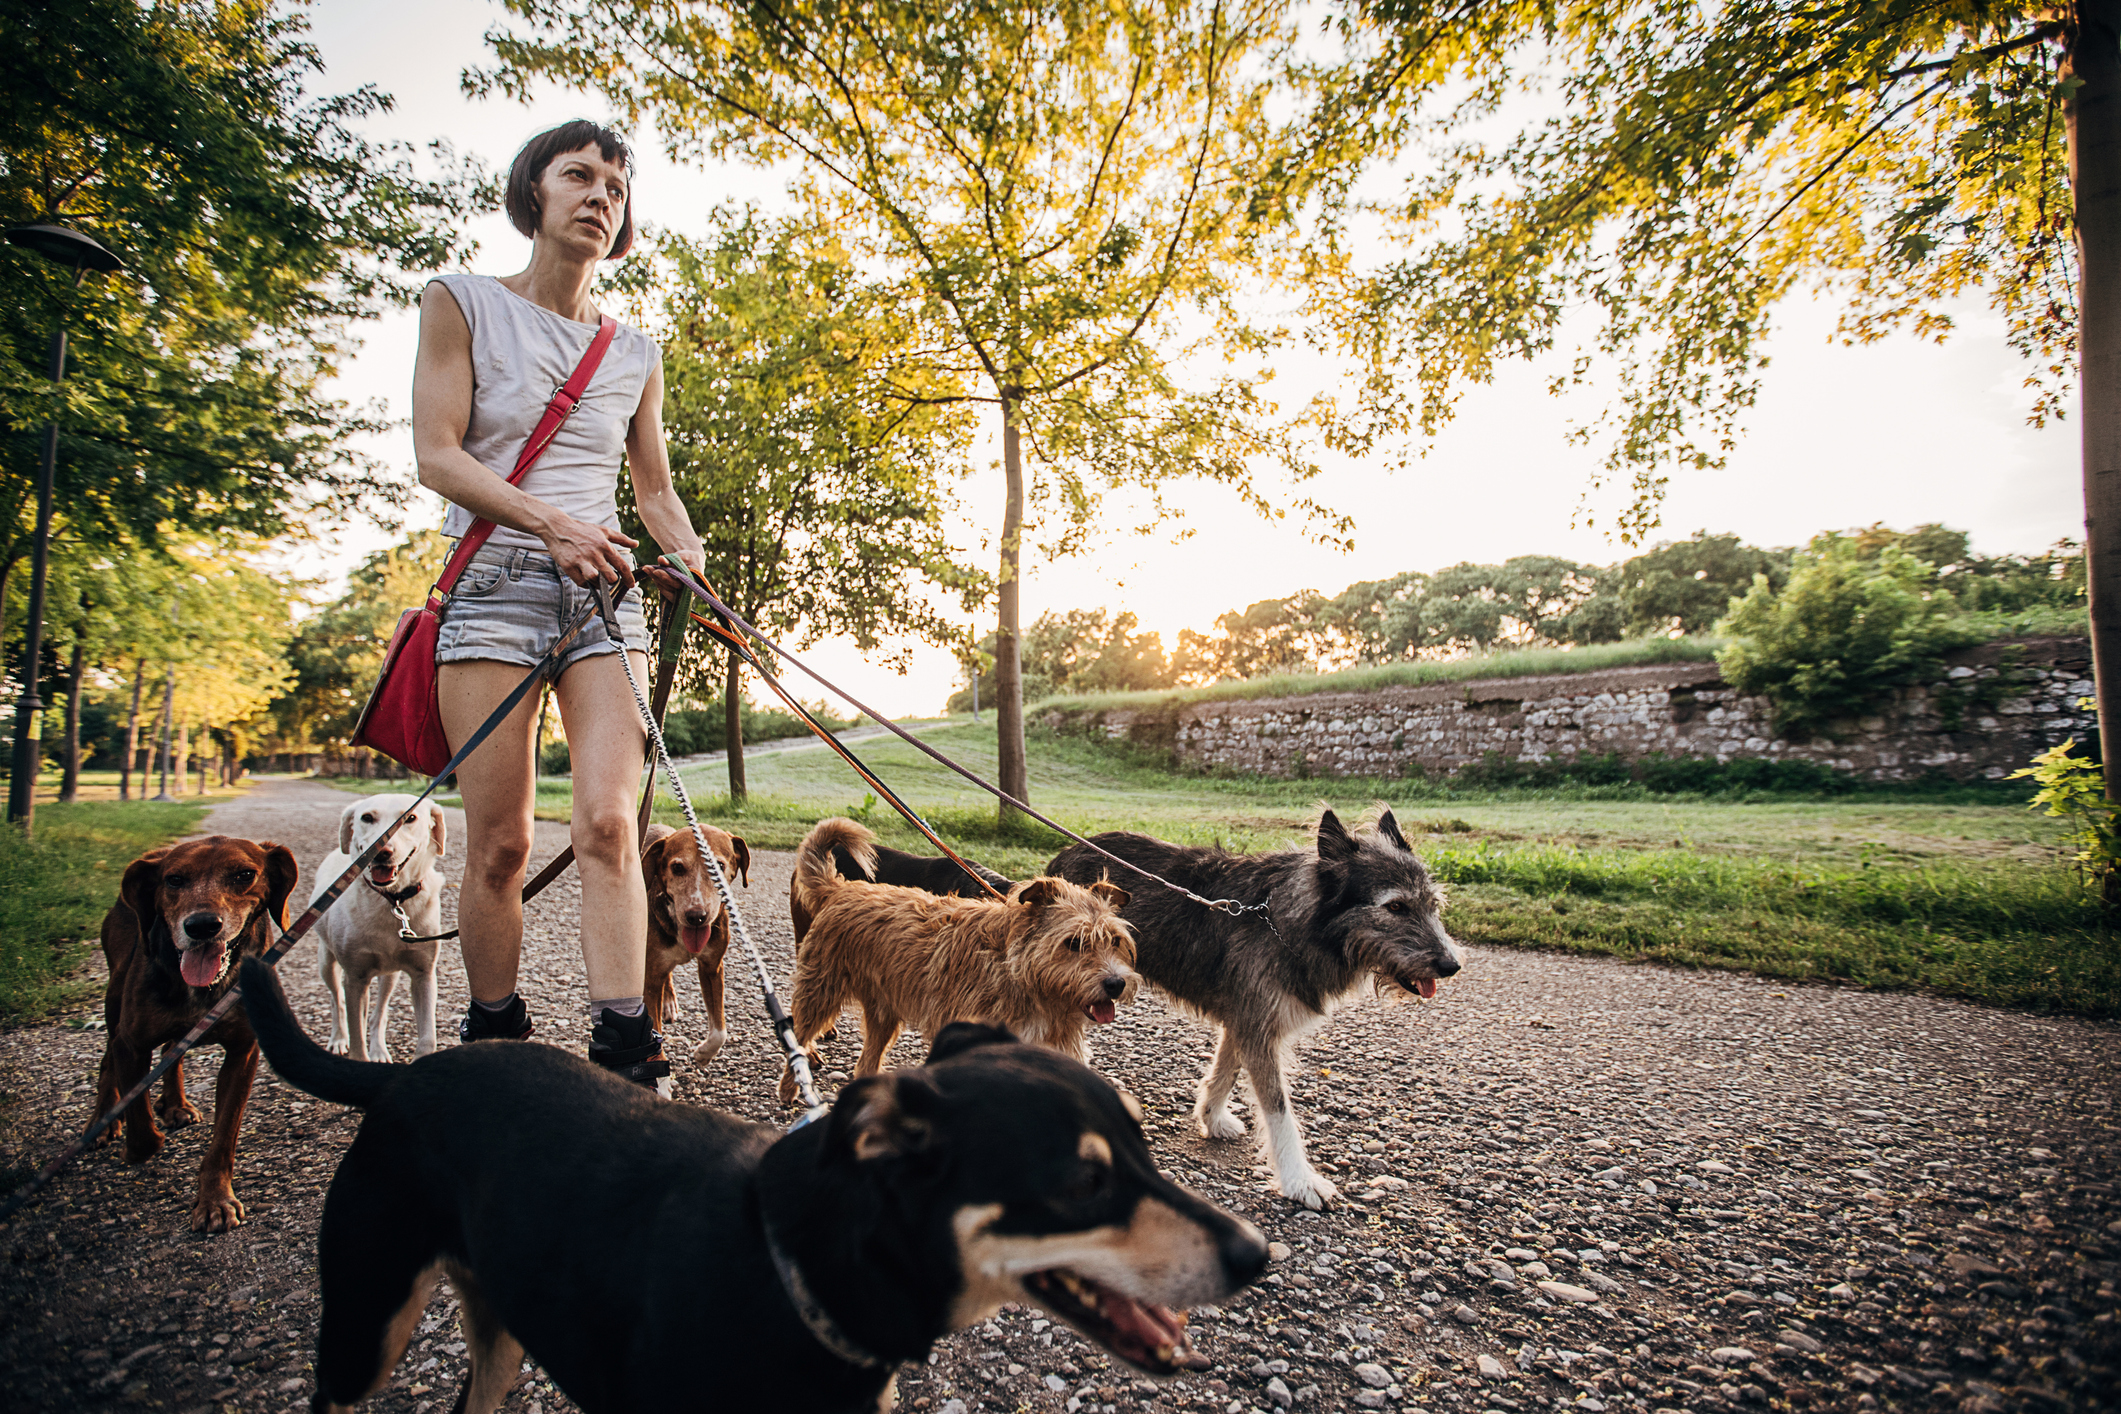 One woman, professional dog walker on roller blades, exercising dogs in park.